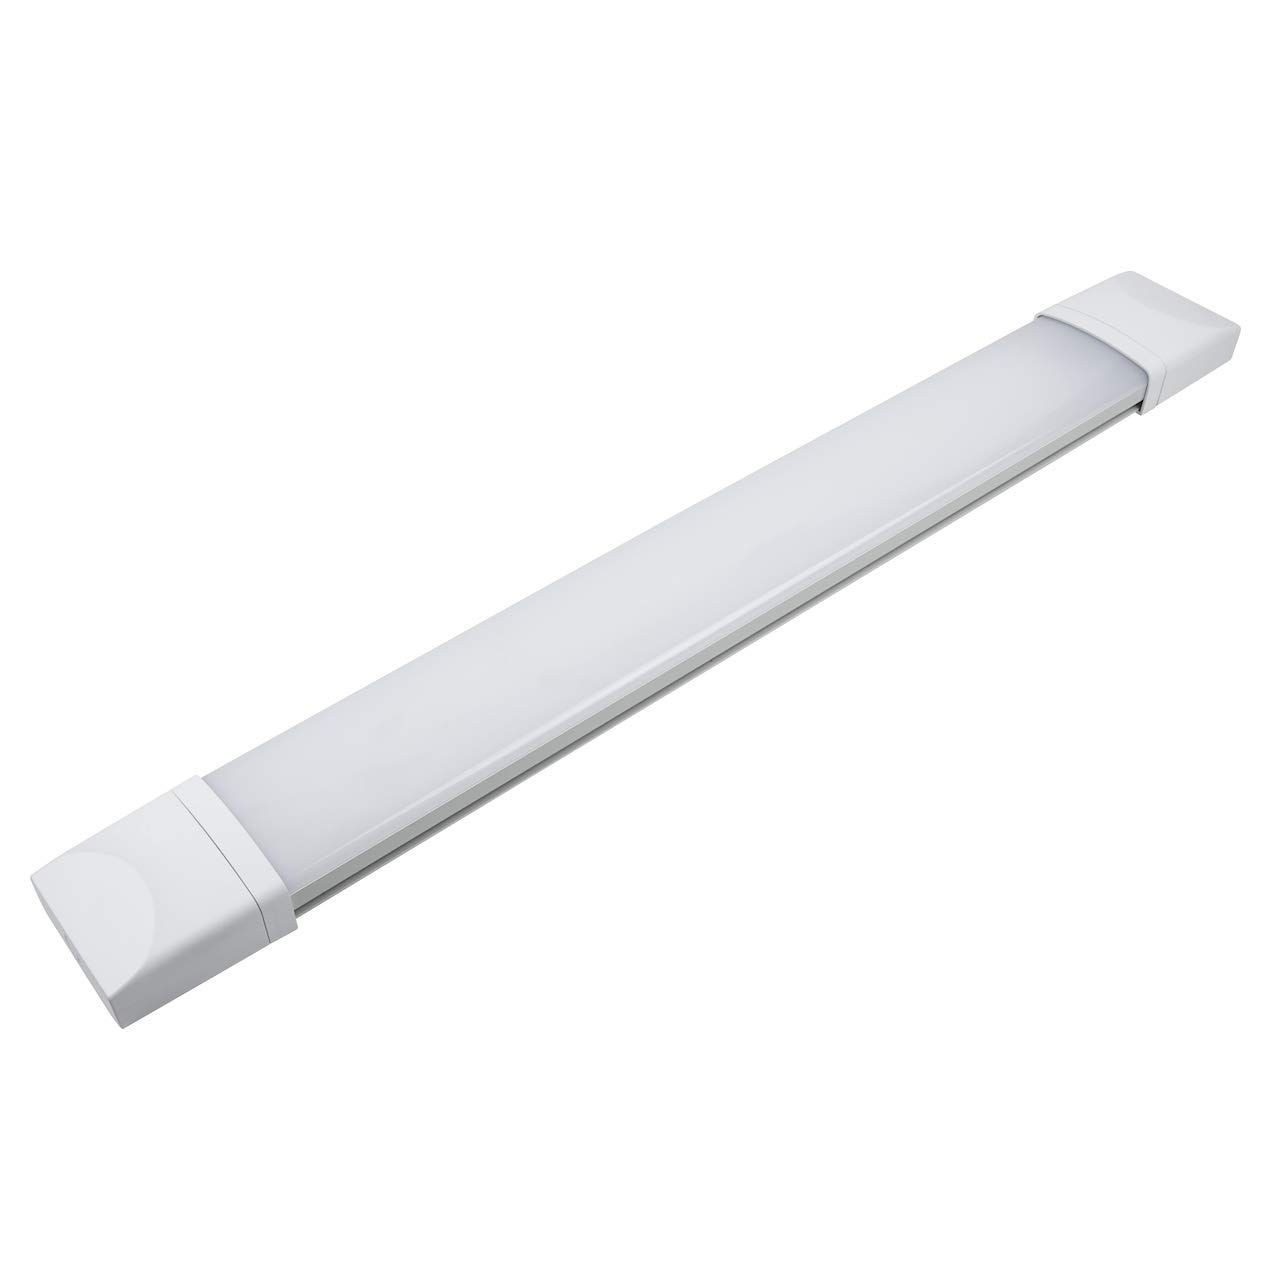 AUROLITE IP65 2FT 60CM 18W LED BATTEN SLIM LUCI DA SOFFITTO TRI-PROOF, 6000K, 1400LM, ANTI CORROSIVI LUCI DA SOFFITTO, LUCI DA SOFFITTO IMPERMEABILI, LUCI DA SOFFITTO DA INTERNO / DA ESTERNO